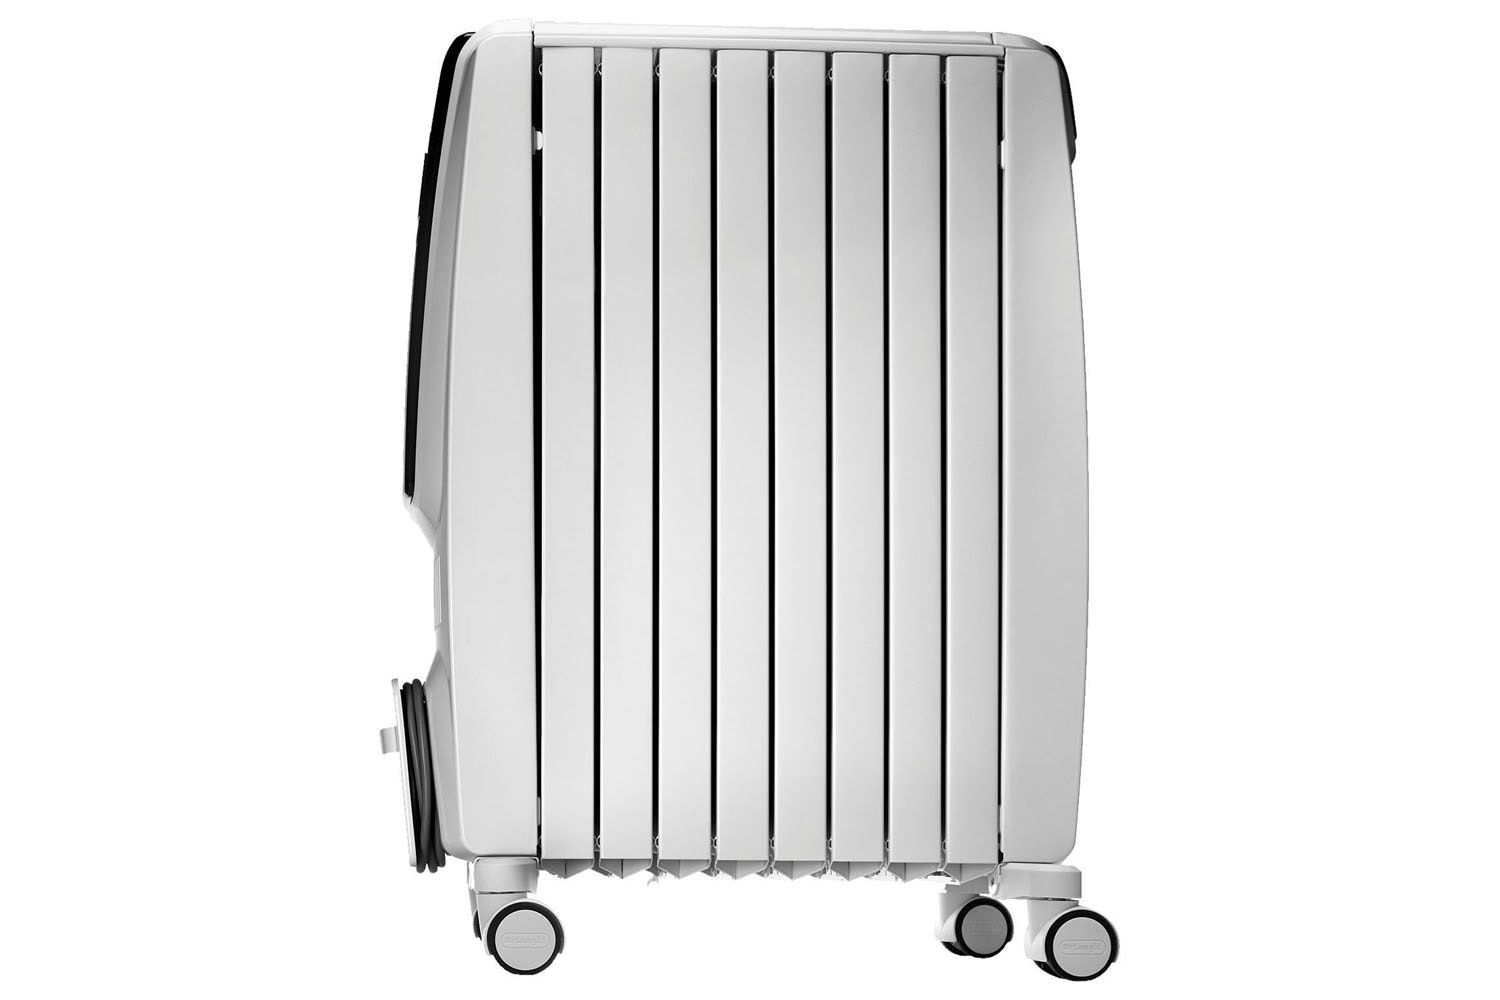 Delonghi Dragon 4 Oil Filled Radiator| White